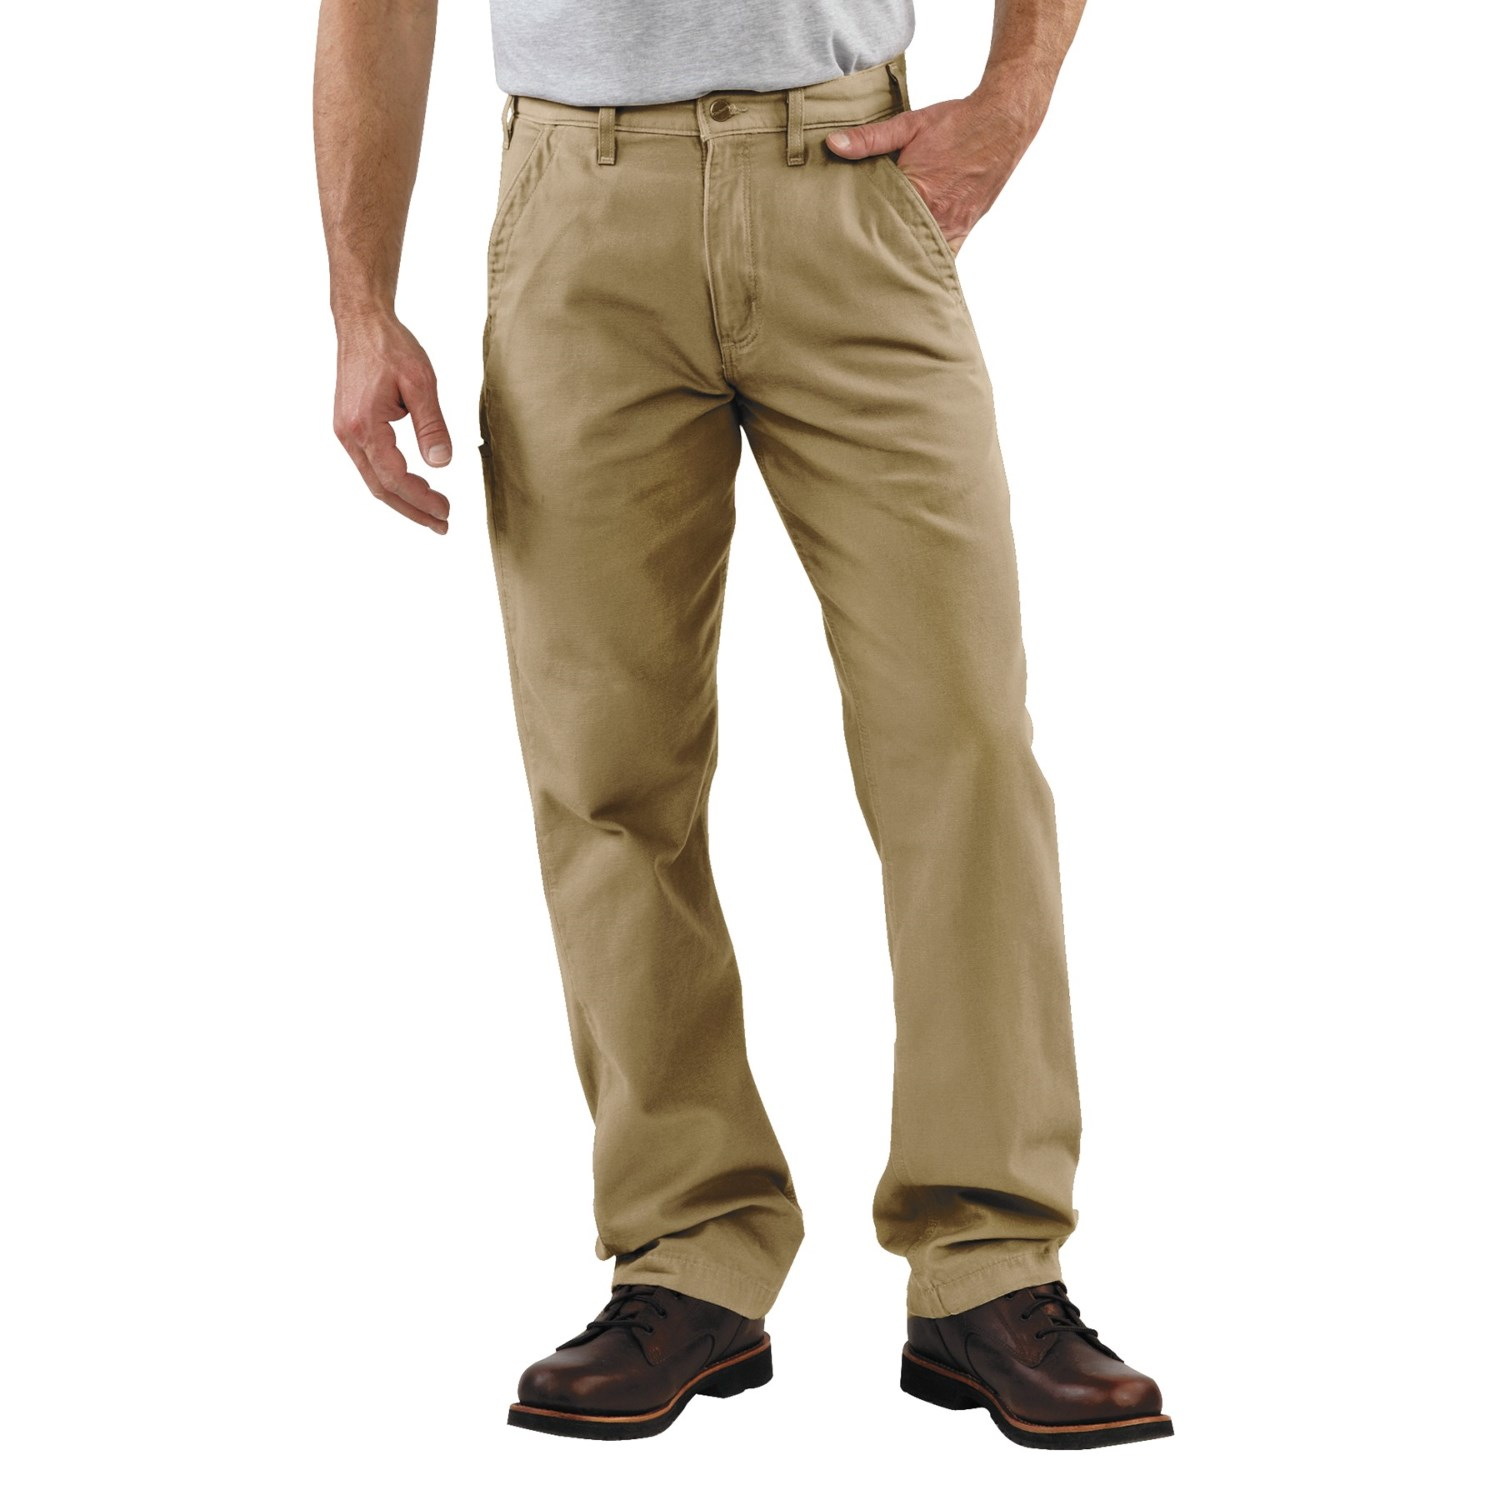 The best work pants - Review of Carhartt Relaxed Fit Khaki Pants ...